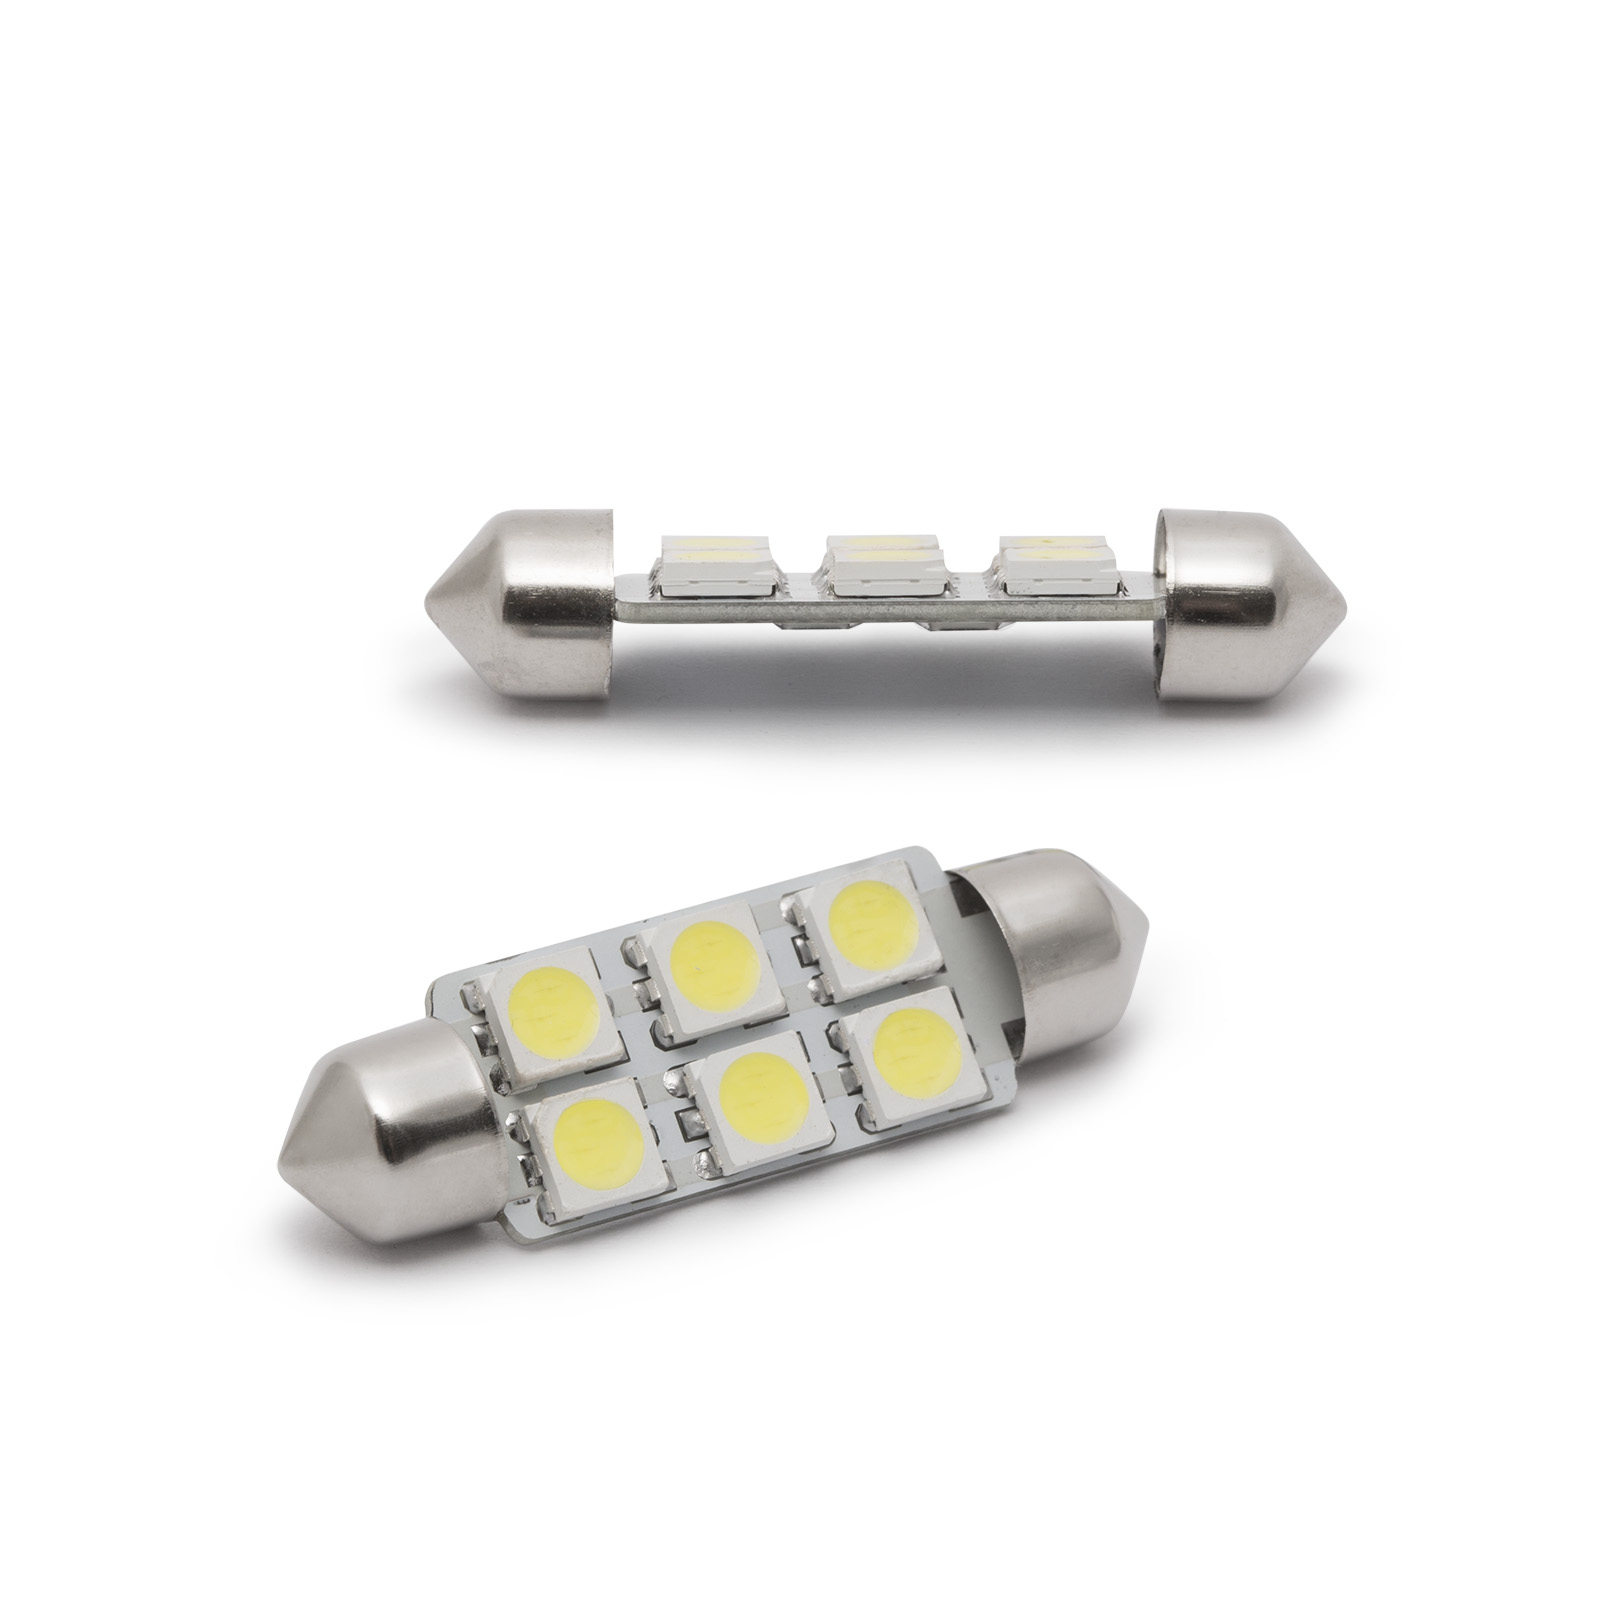 LED izzó CLD017 1,5W - Sofit 41mm - 108 lumen 2 db/bliszter